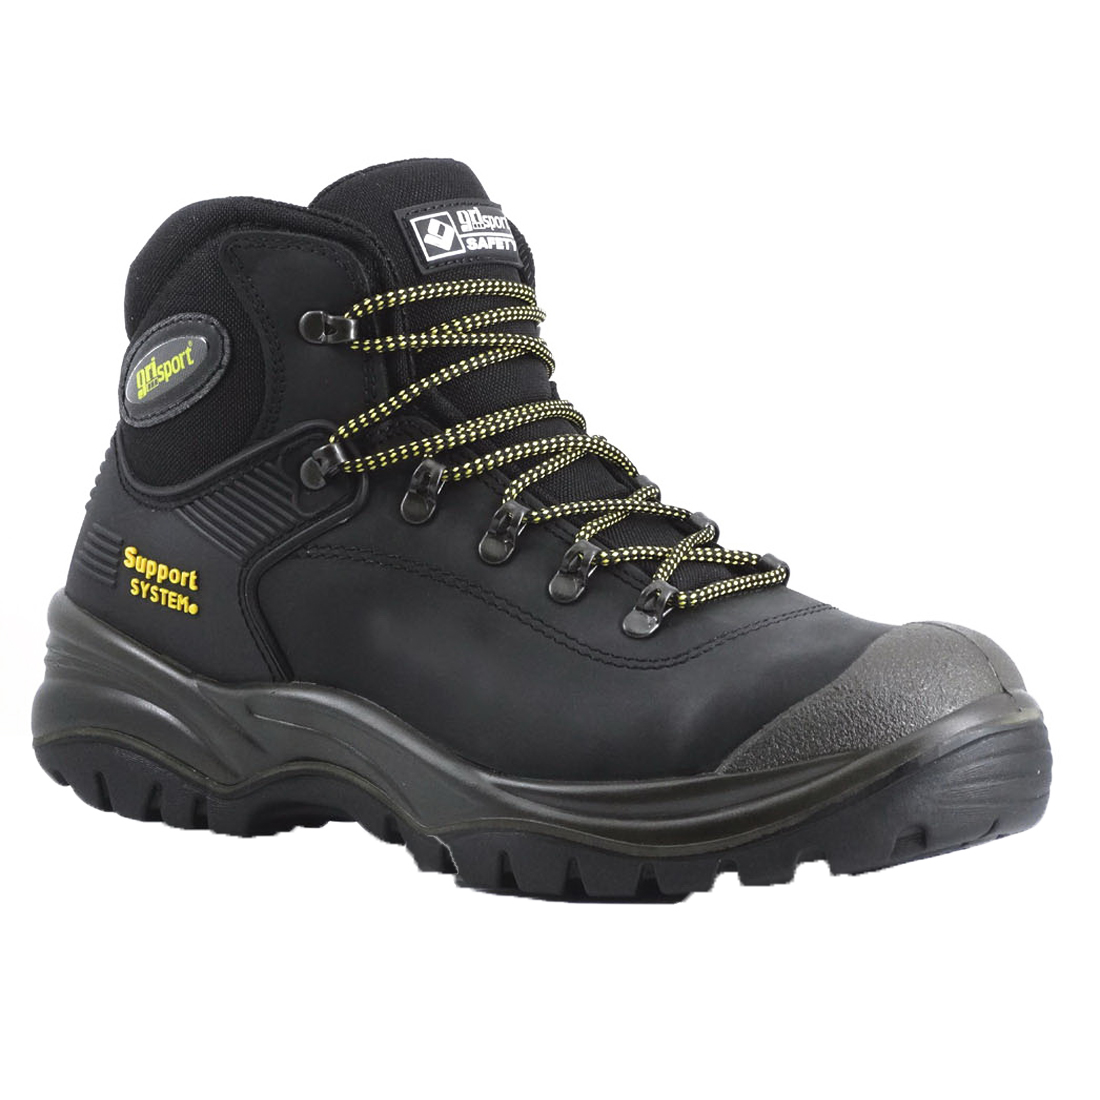 Contractor Safety Boot Size 10 Black Dakar Leather